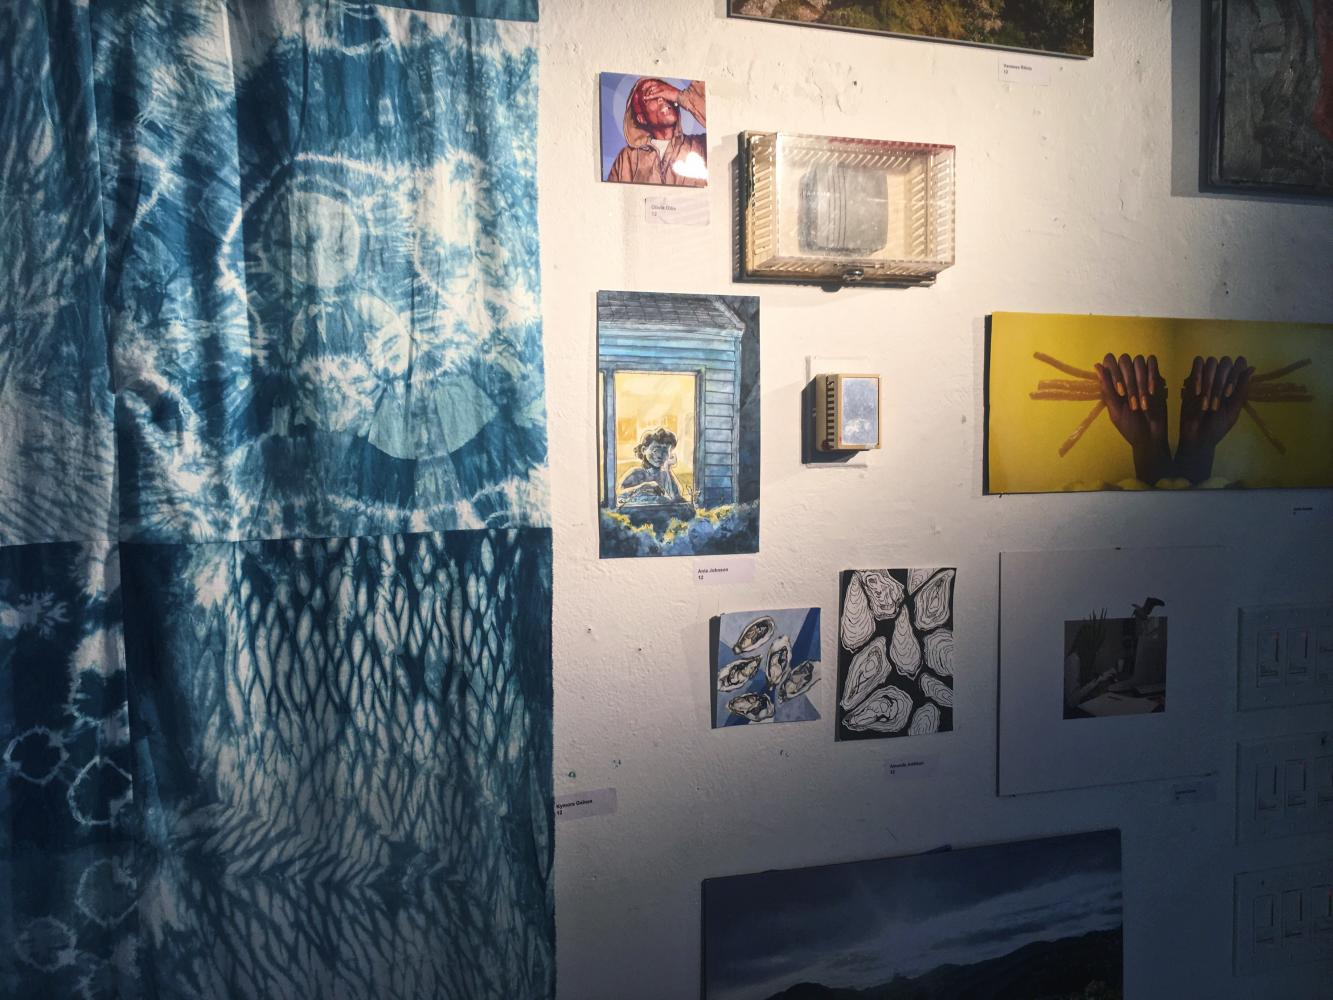 Decorating the walls of Building 9, artwork that spanned from photographs to articles of clothing adorned the walls. Students showcased their summer pieces at the annual Visual/Digital Fall Showcase on Sept. 27.